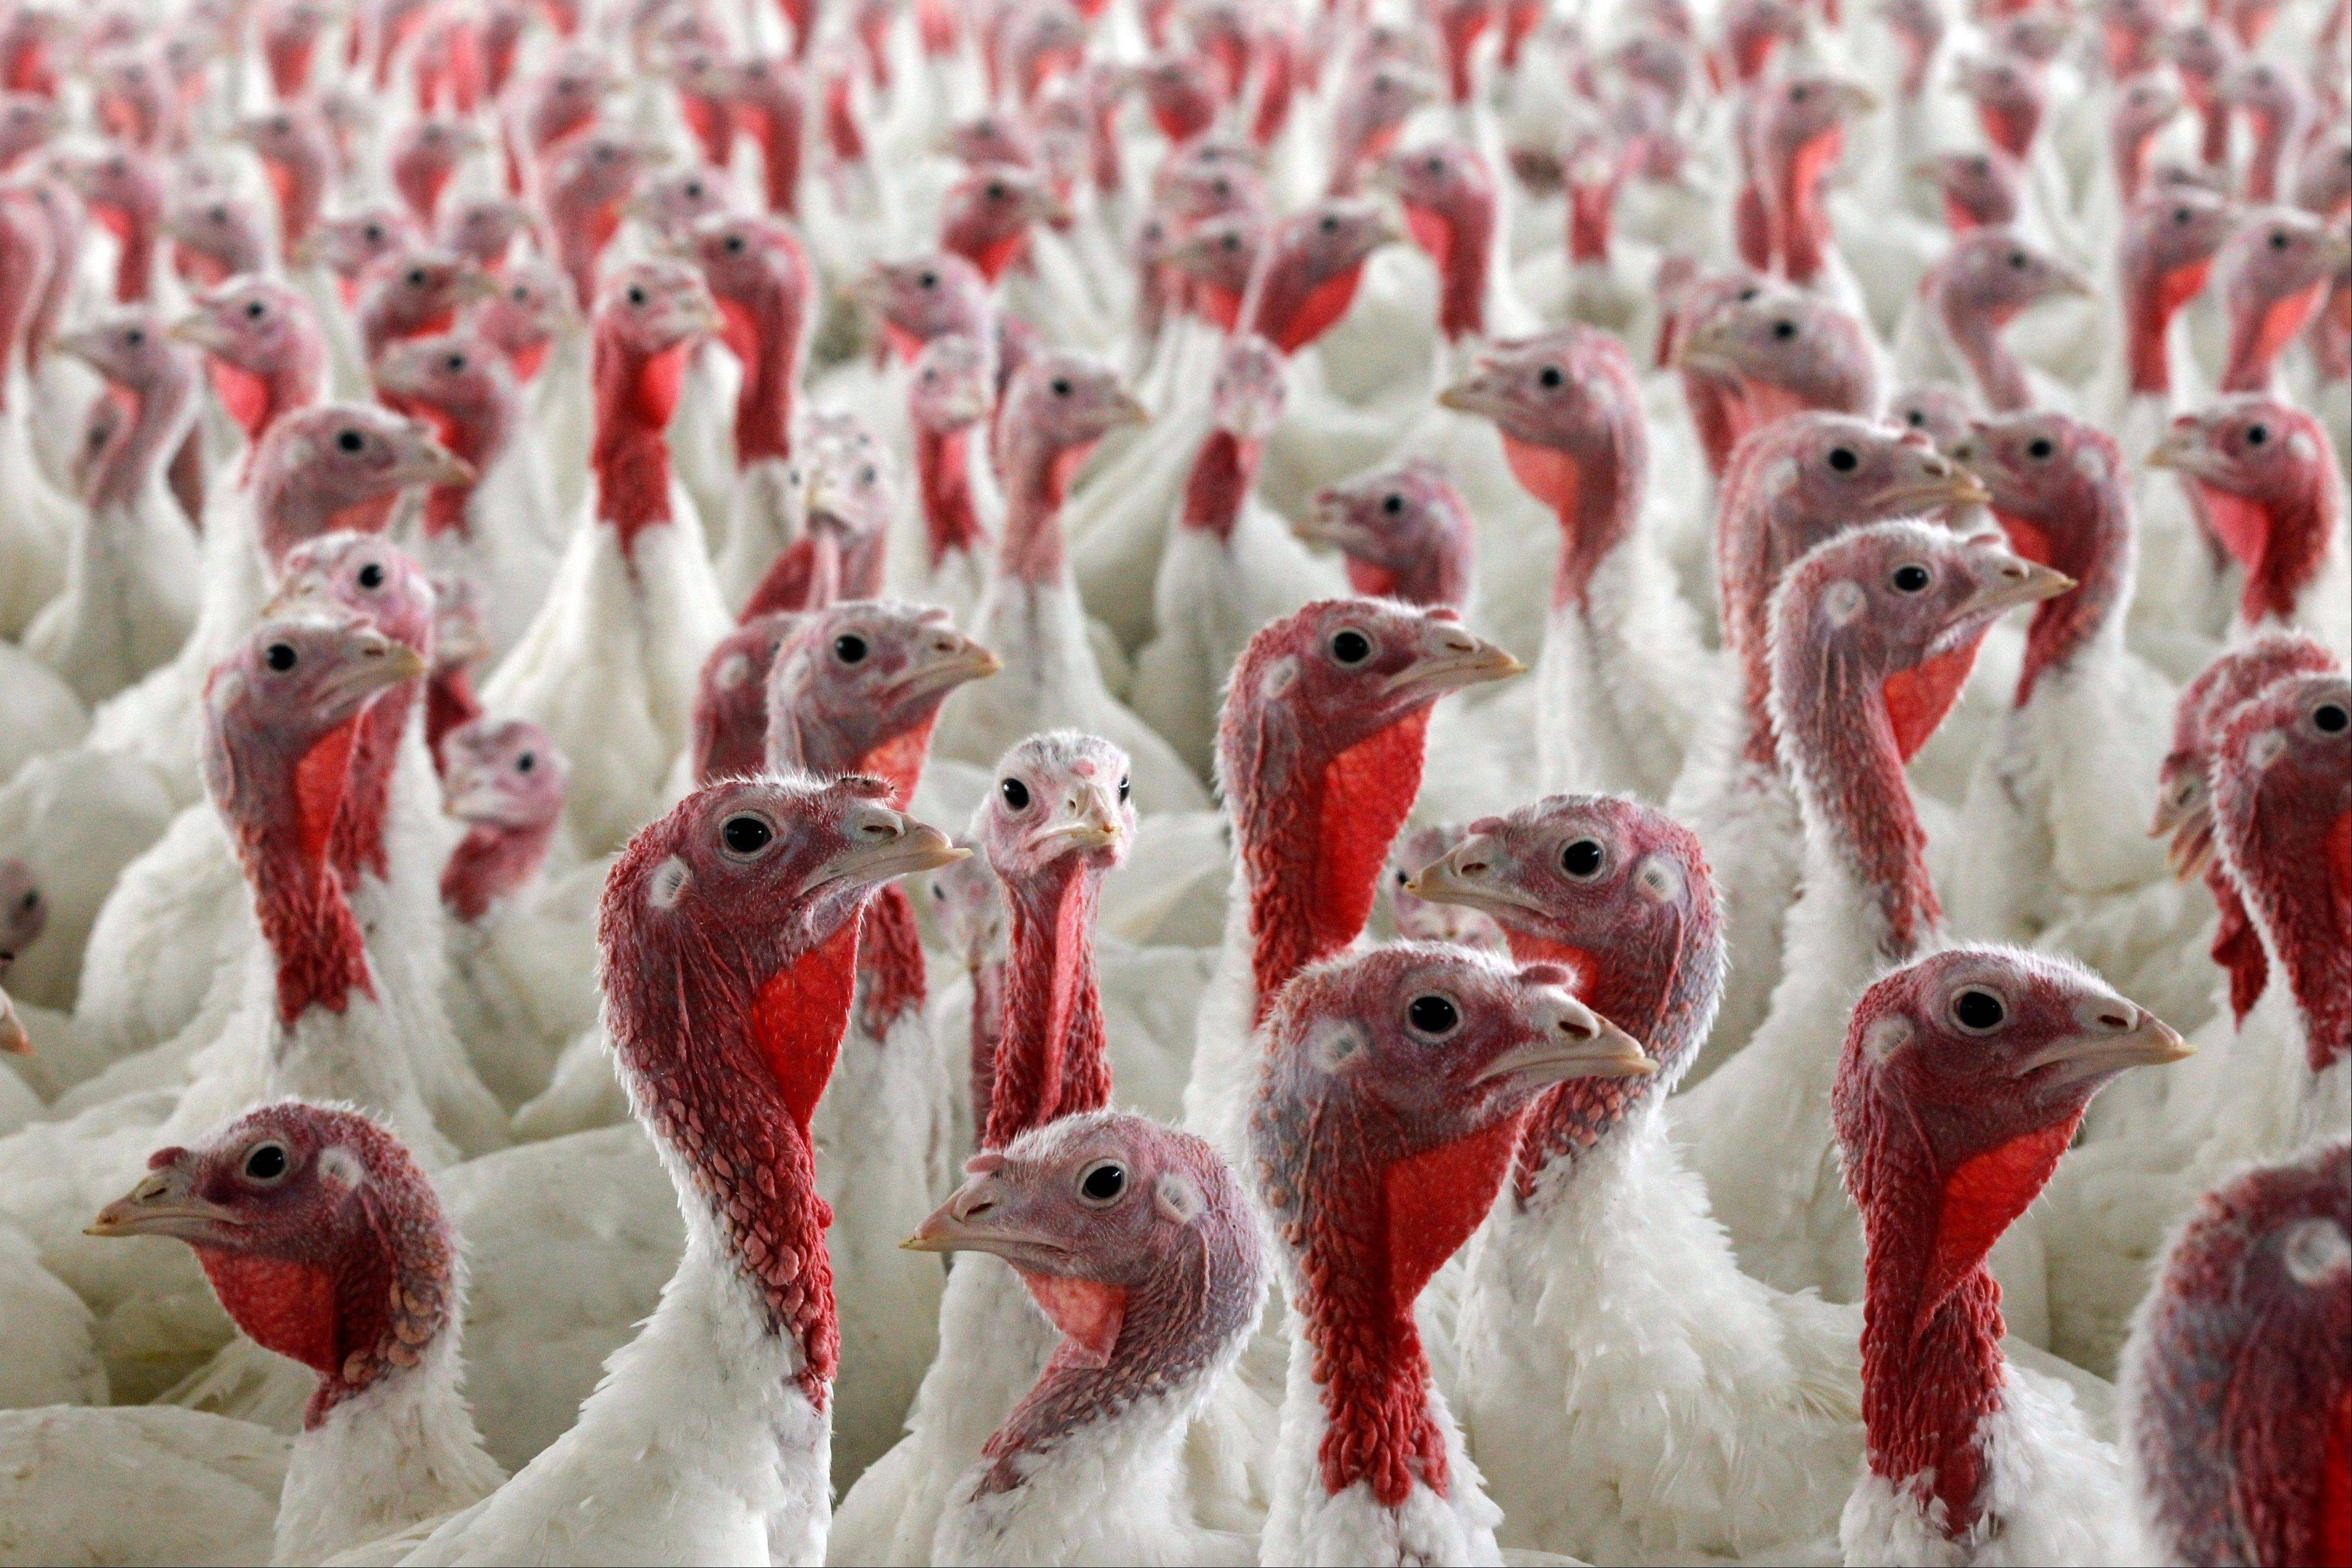 How many turkeys will be raised in the U.S. this year? 254 million, the U.S. Census Bureau says. We also import roughly $12 million in turkeys from Canada.